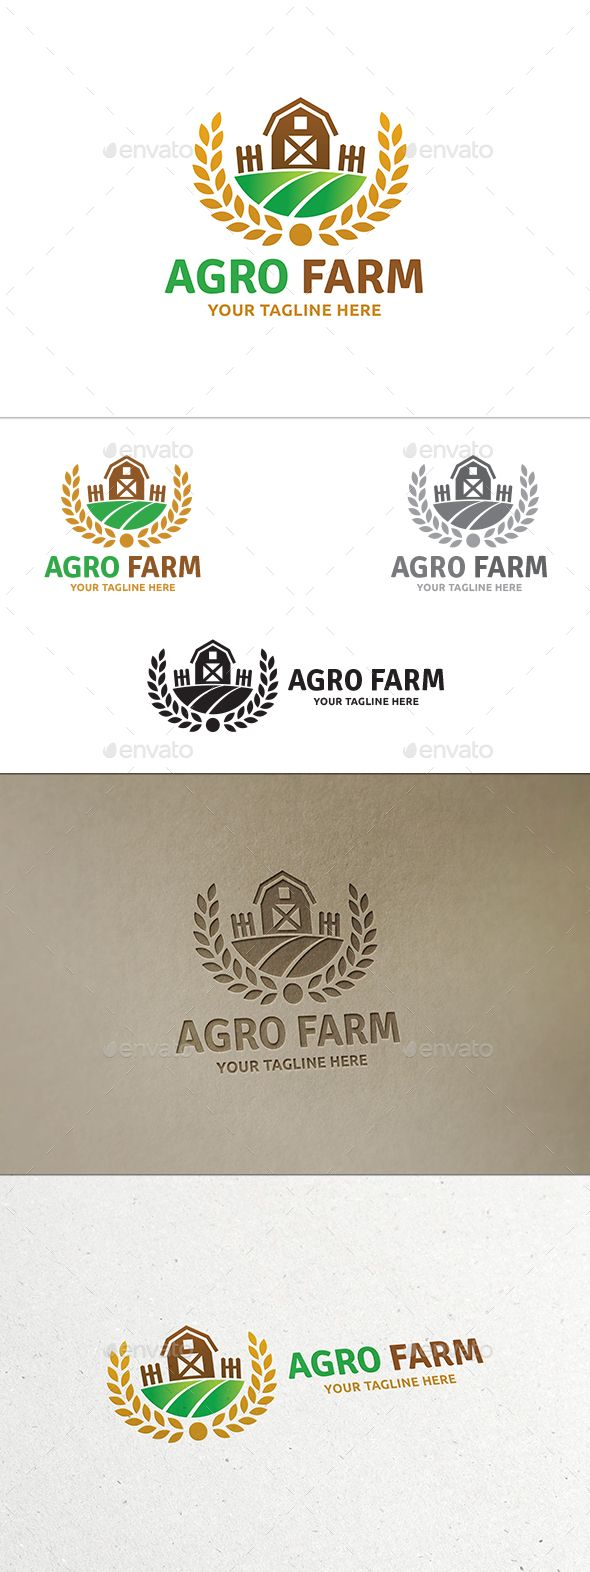 Agro Farm - Logo Design Template Vector #logotype Download it here: http://graphicriver.net/item/agro-farm-logo/14049642?s_rank=269?ref=nesto